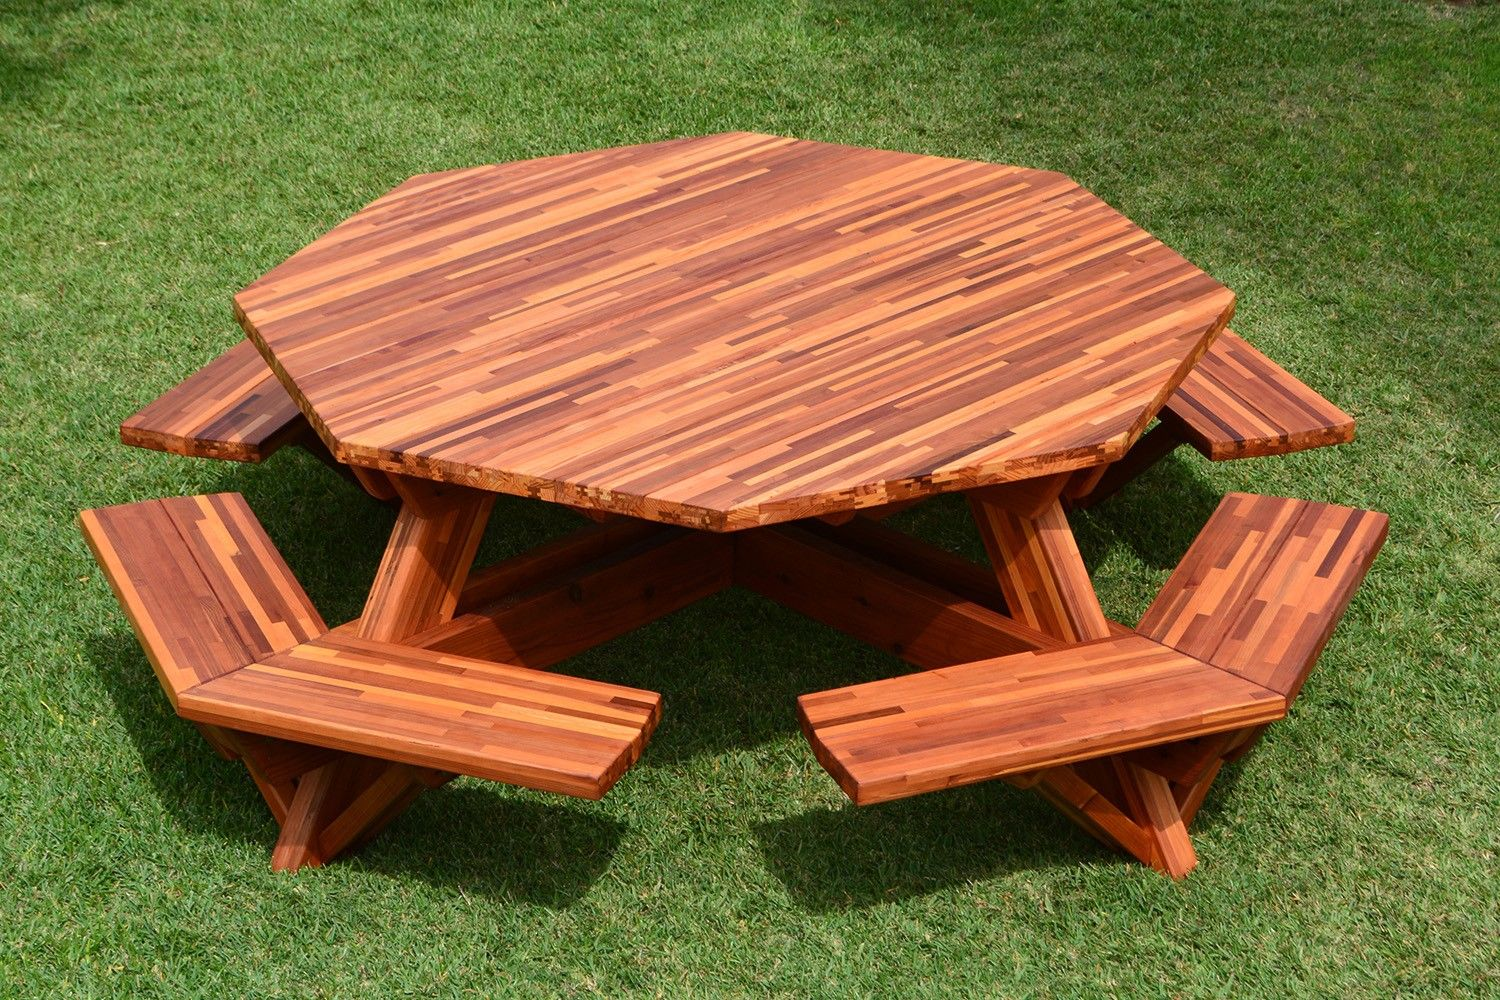 Octagonal Picnic Table Options 6 Diameter Tabletop Attached